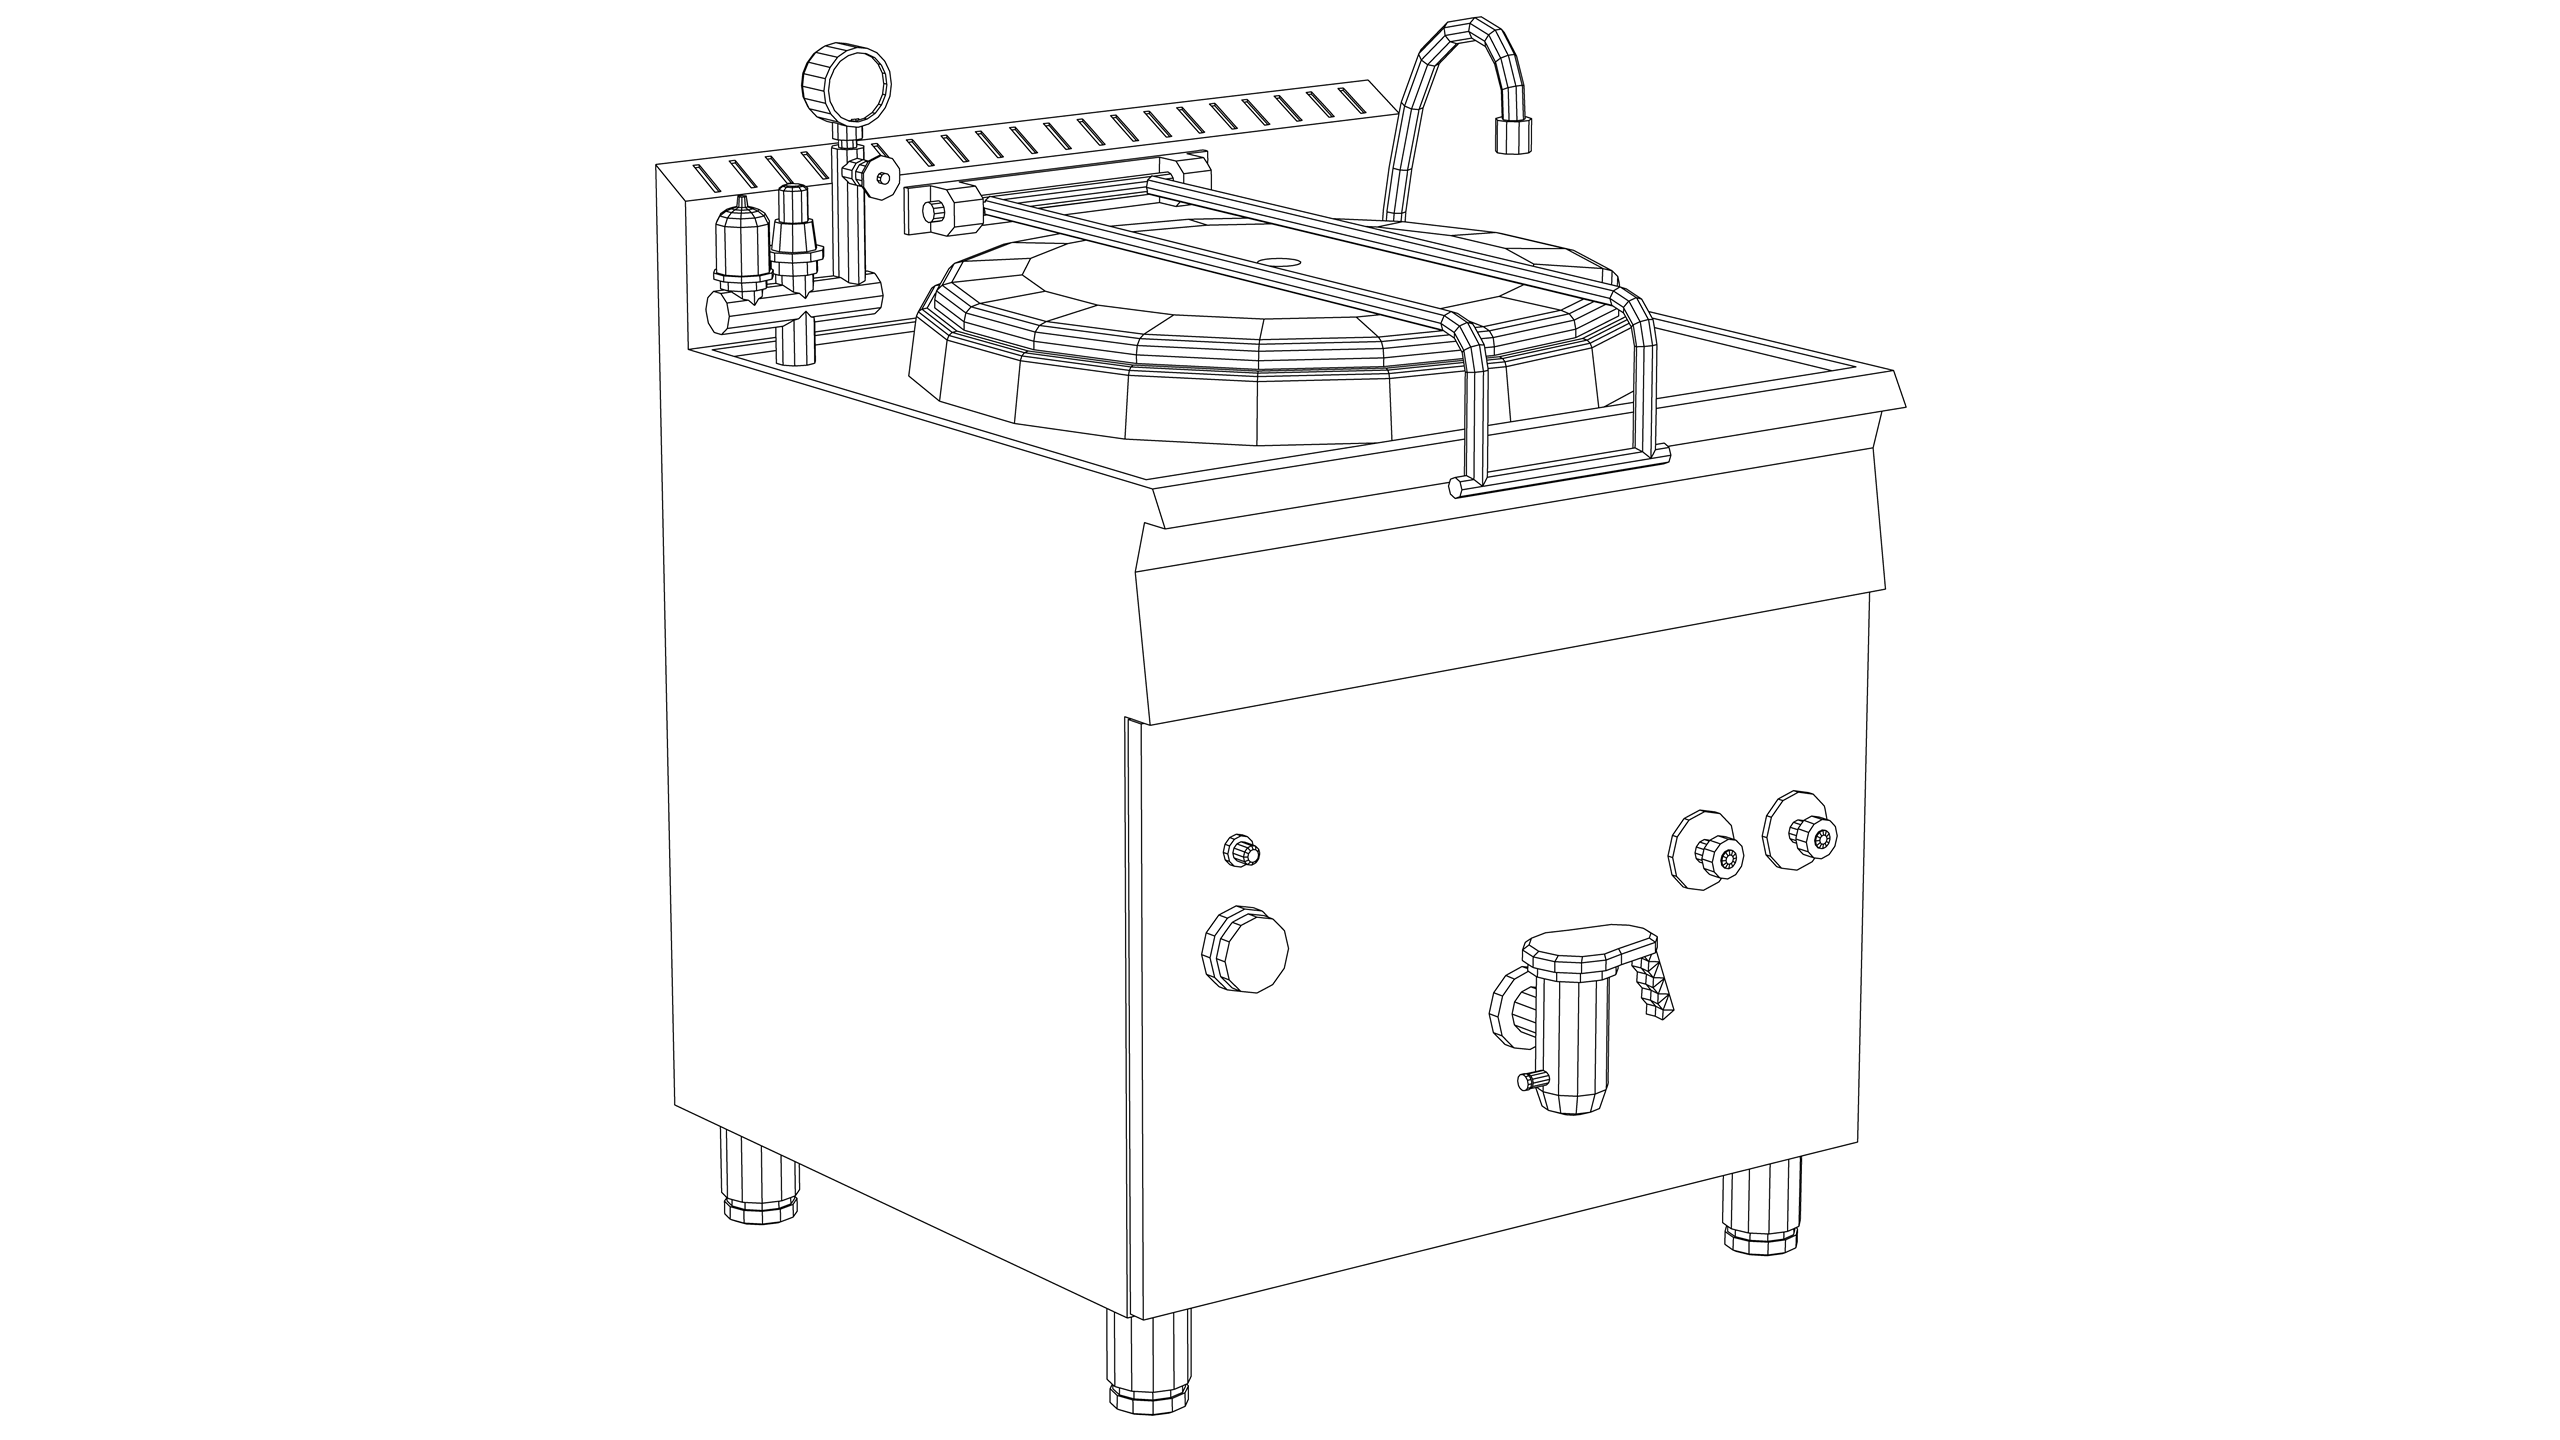 Vector Image: Deep Fat Fryer - Henny Penny